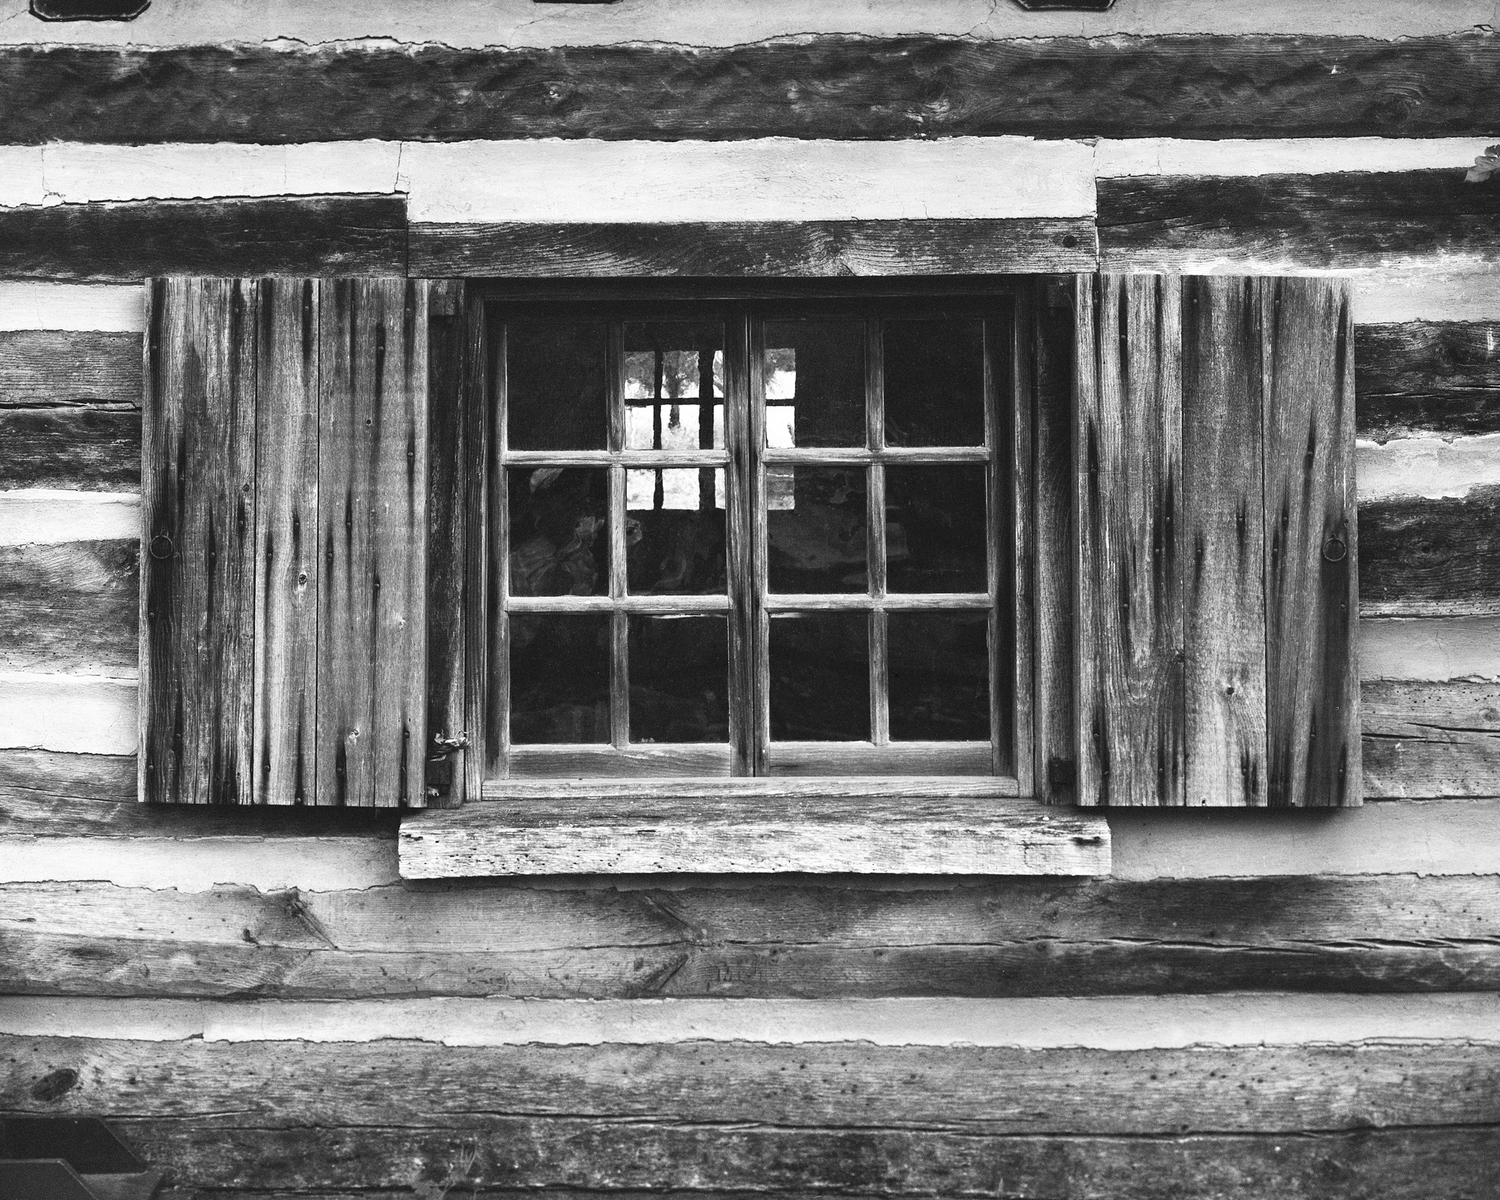 4x5_for_365_project_0171_Landis_Valley_window.png